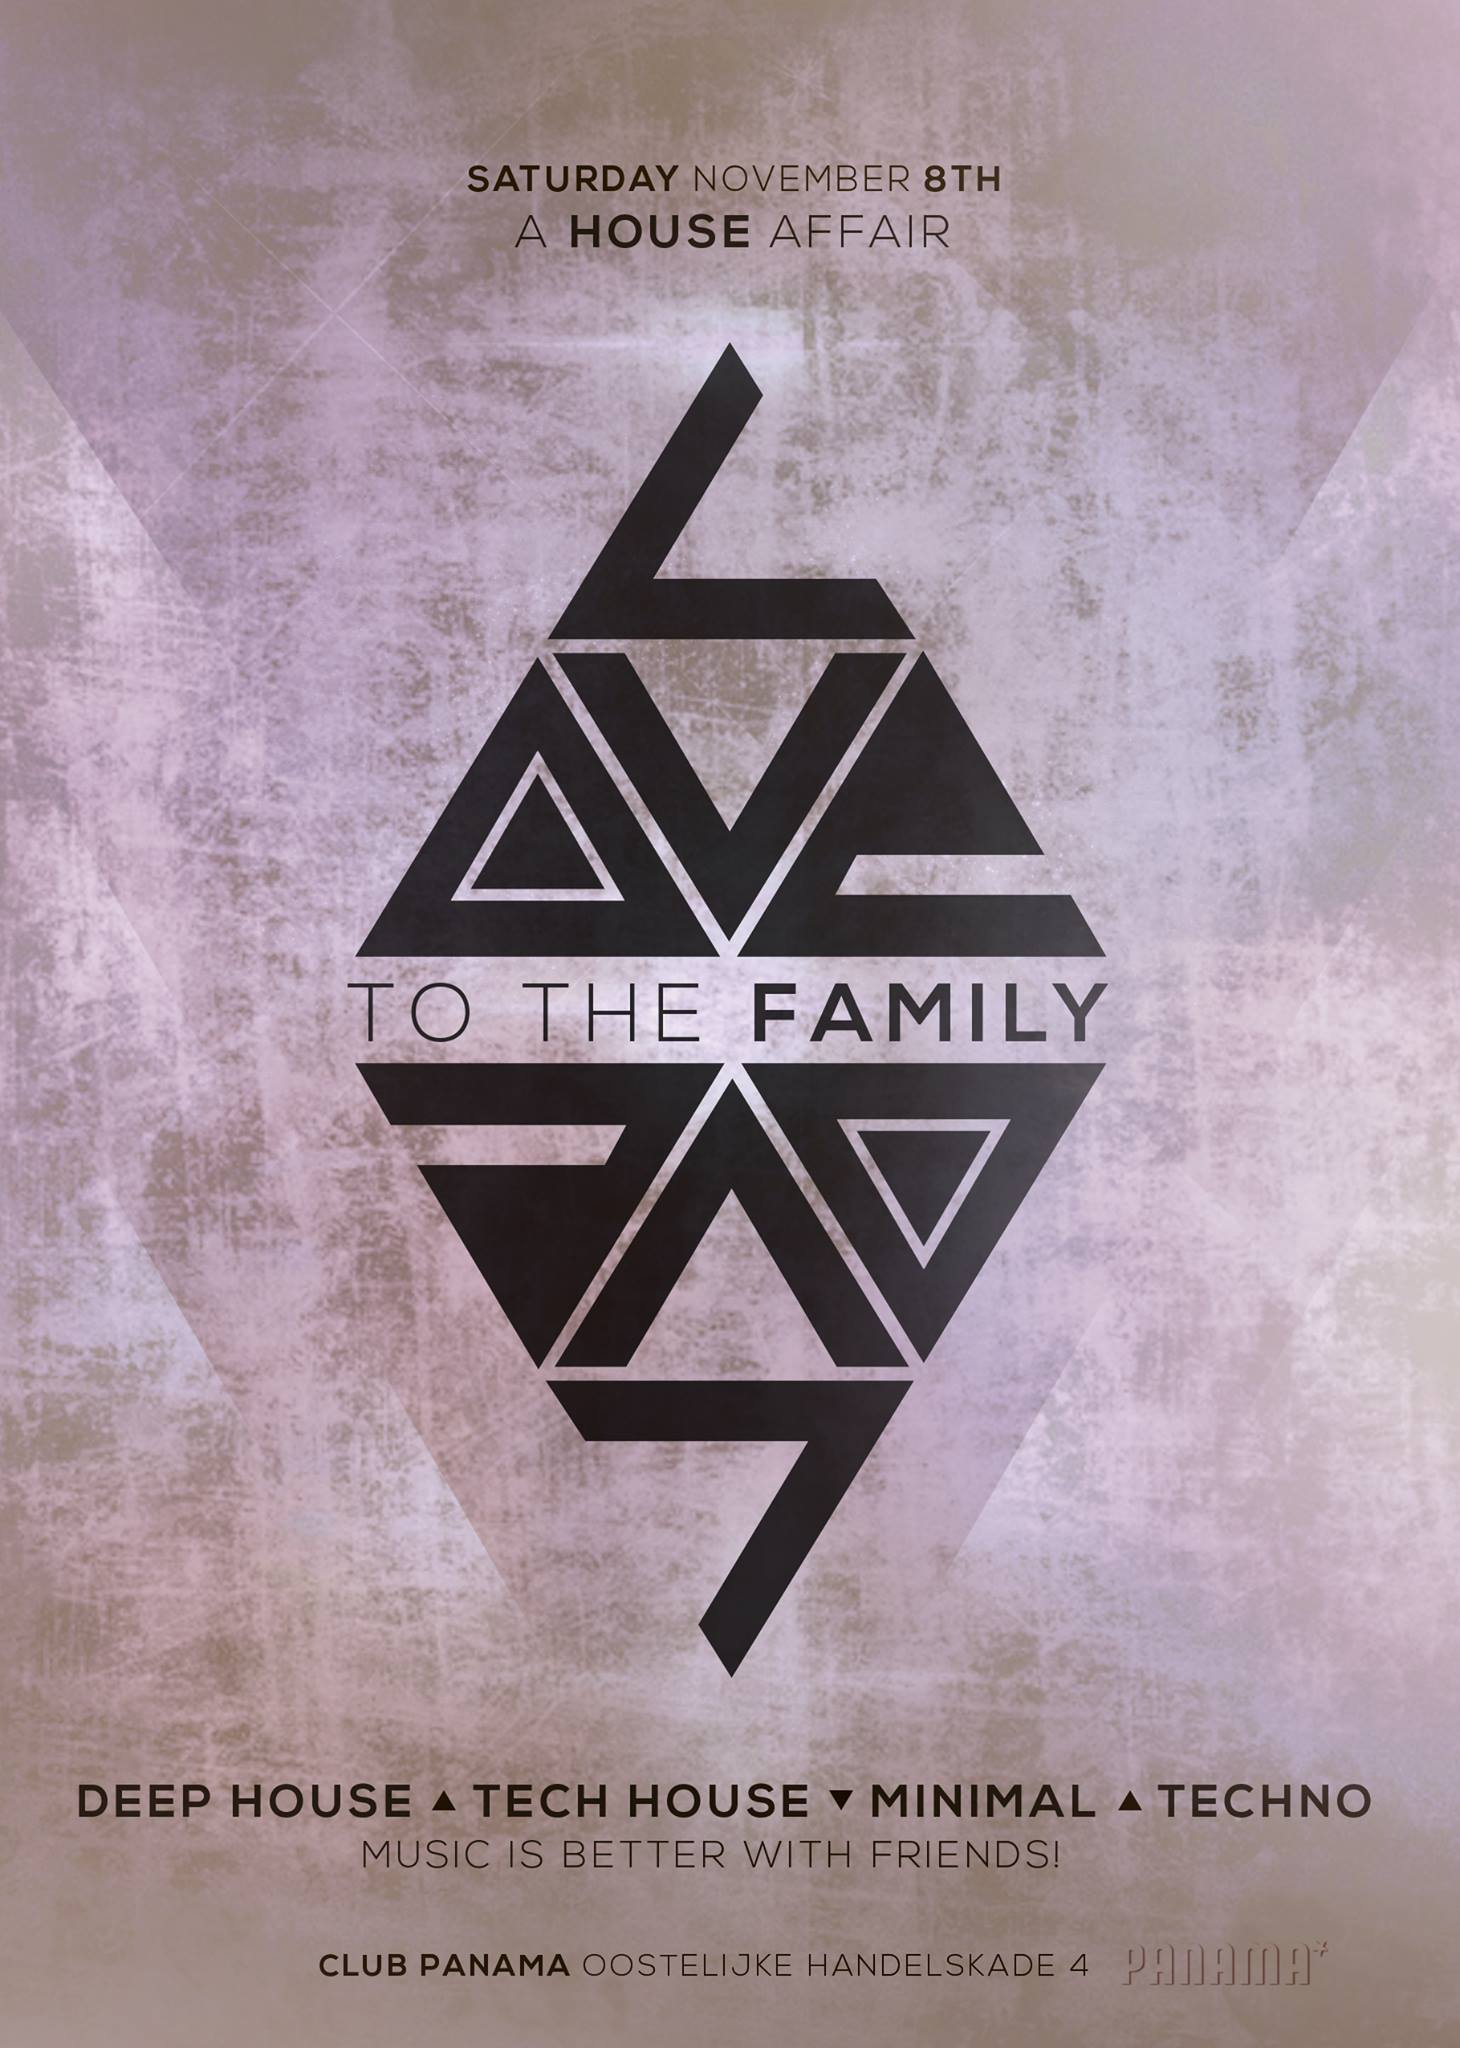 Love to the Family - Tickets, line-up & info